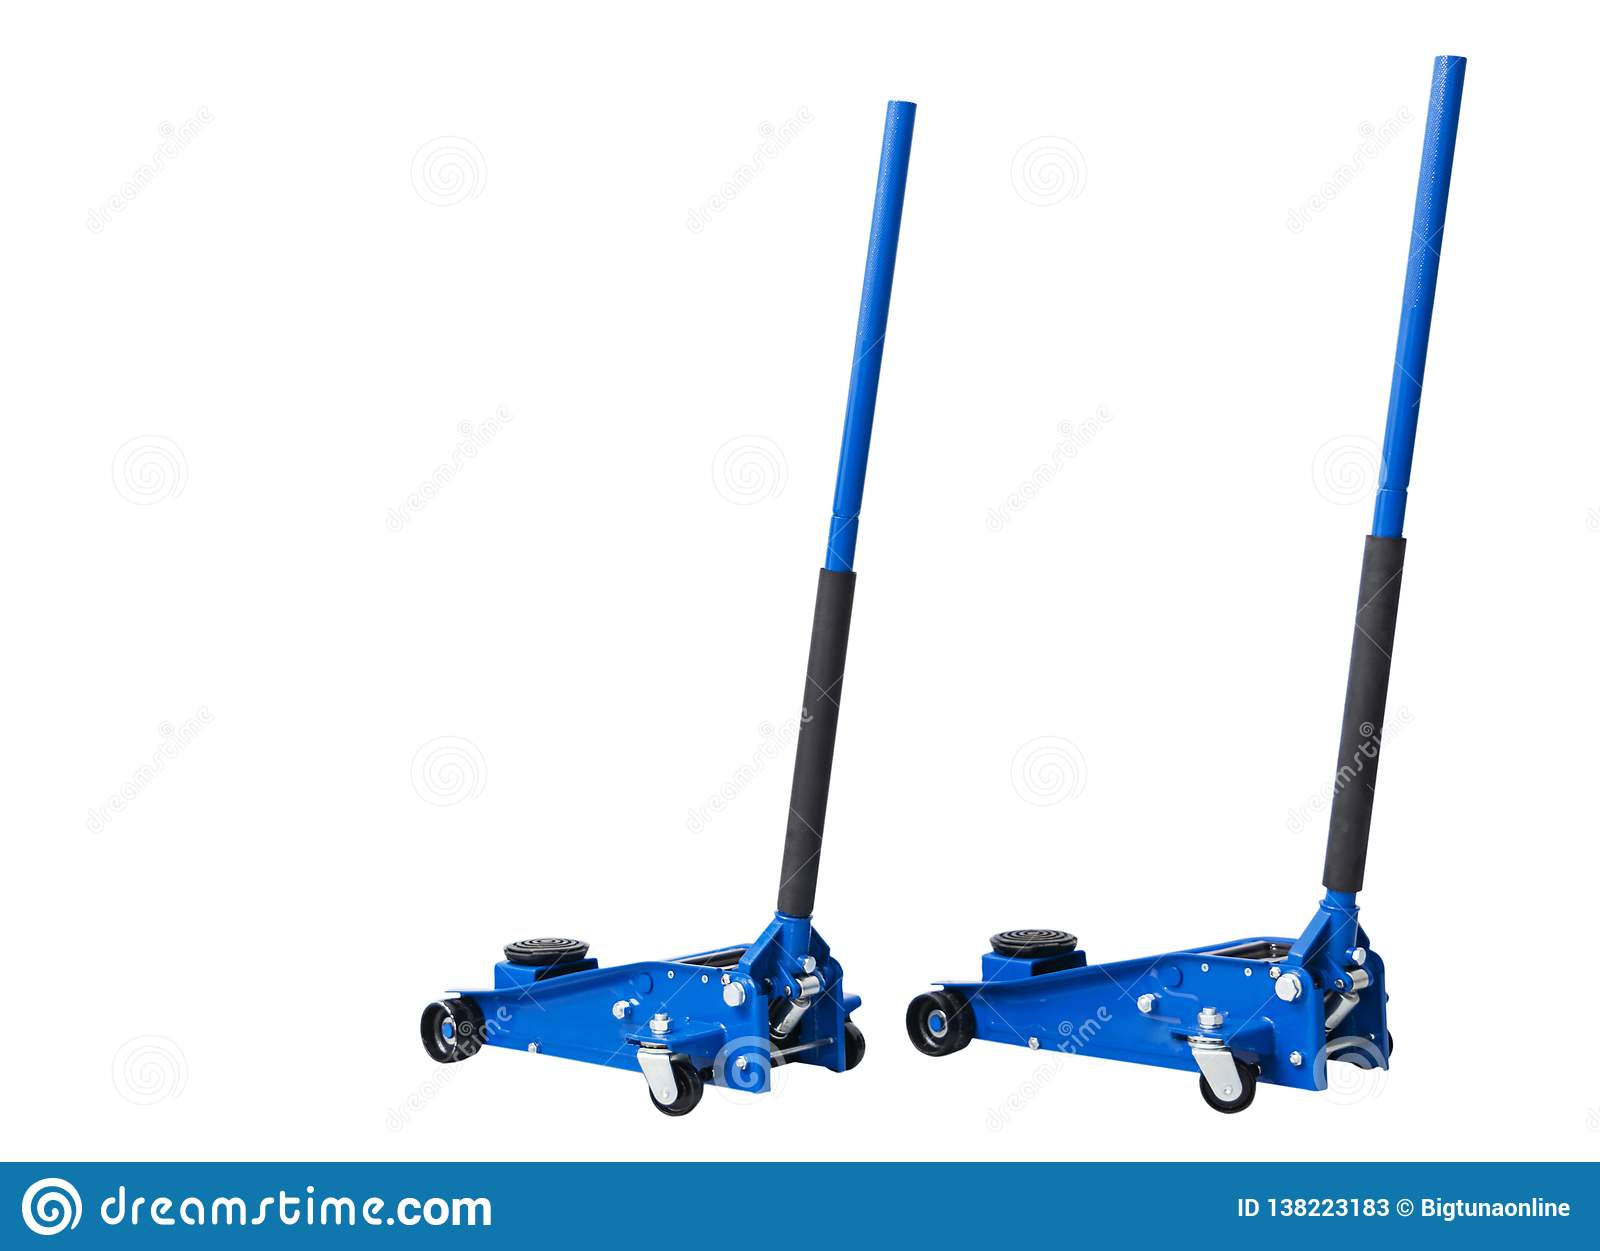 Hydraulic car floor jacks isolated on white background. Car Lift. Blue Hydraulic Floor Jack For car Repairing. Extra safety measur